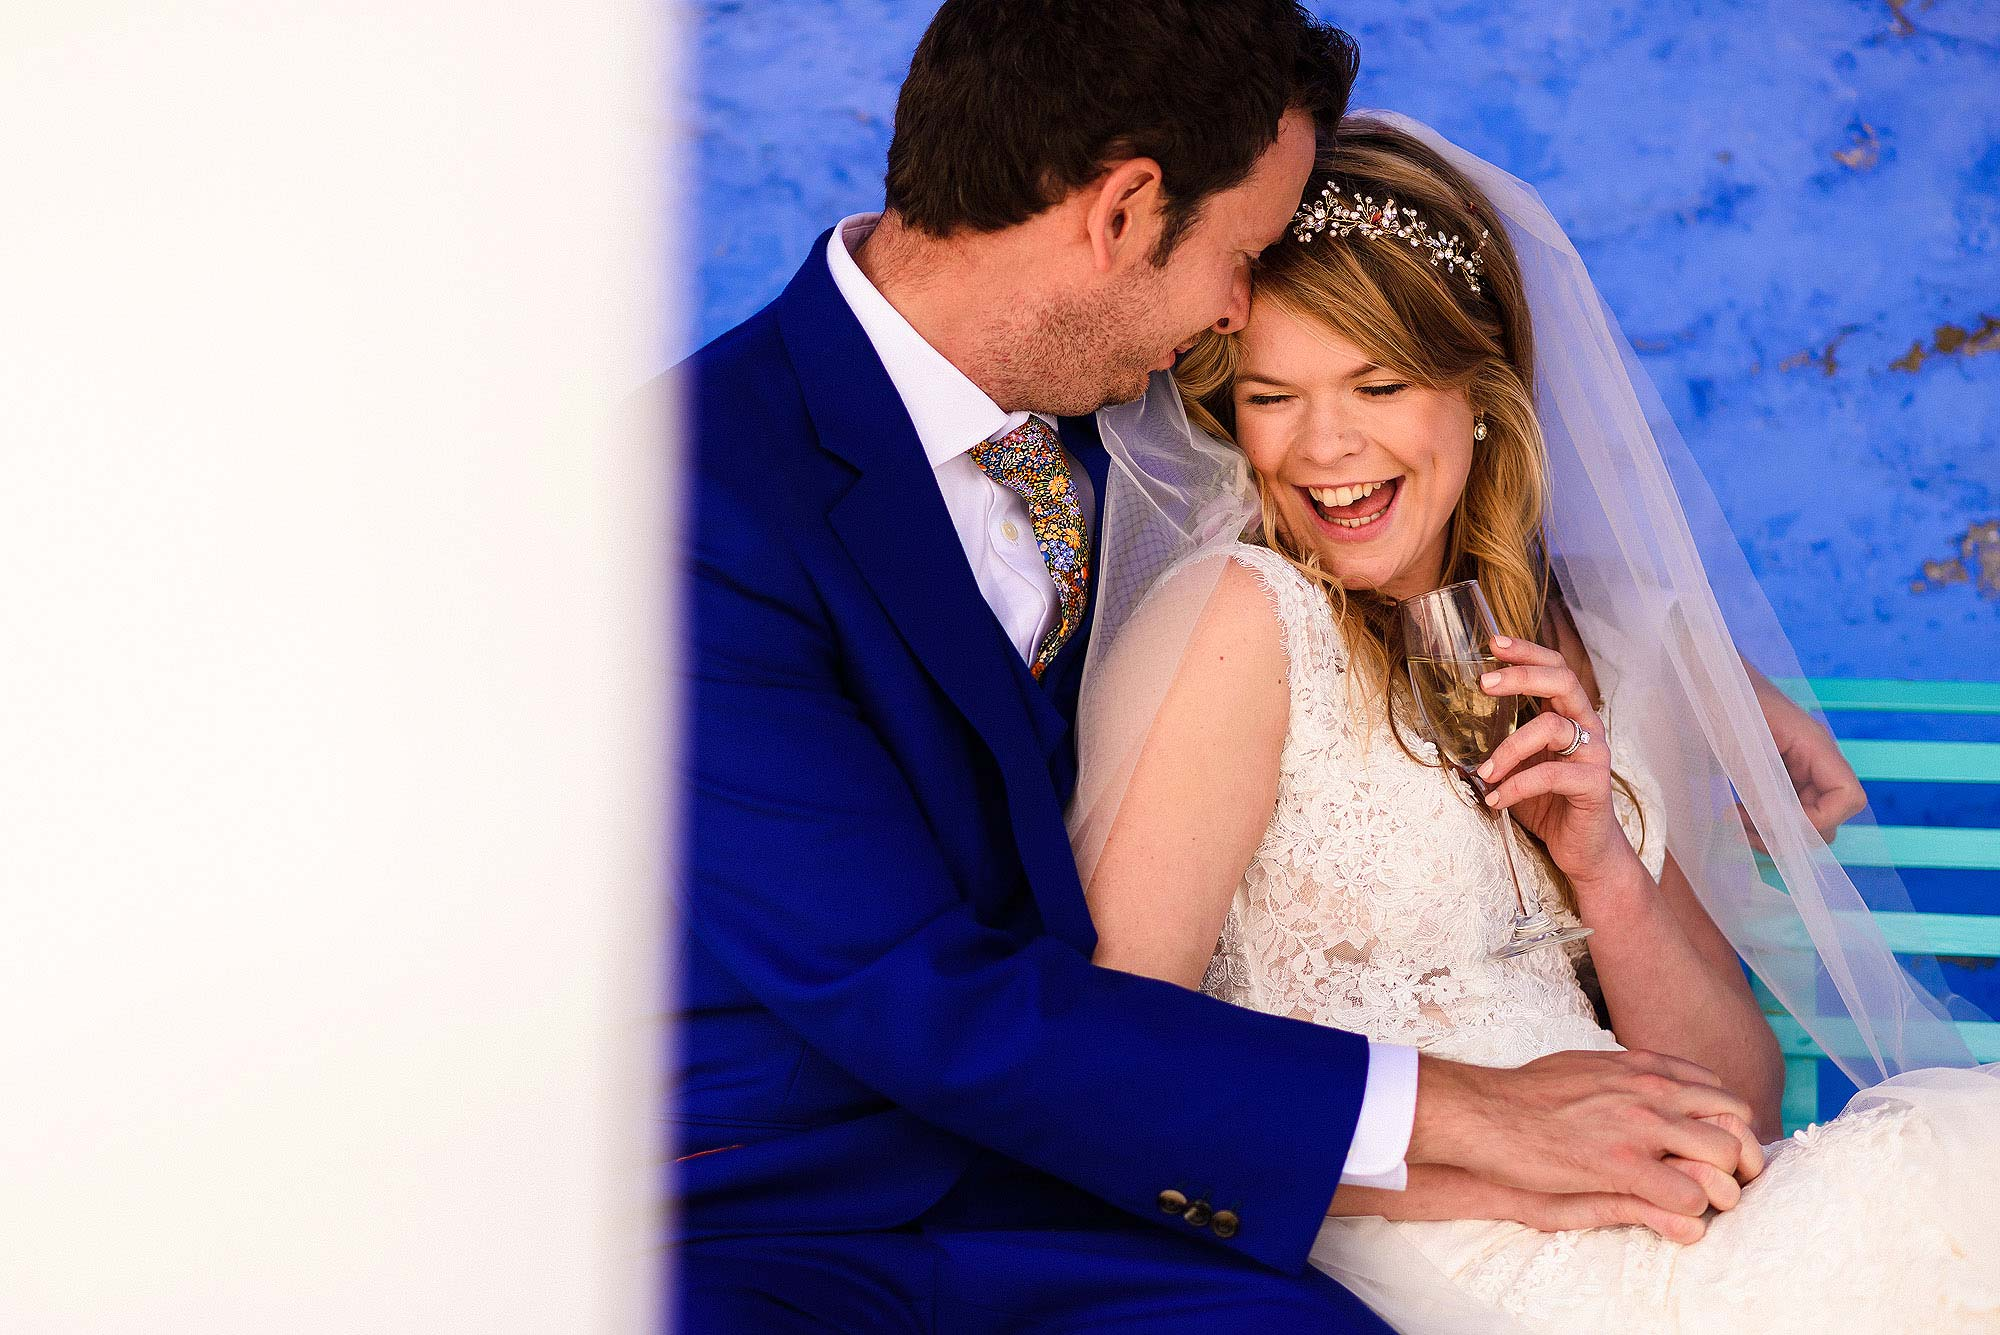 intimate moment between newlyweds at Portmeirion